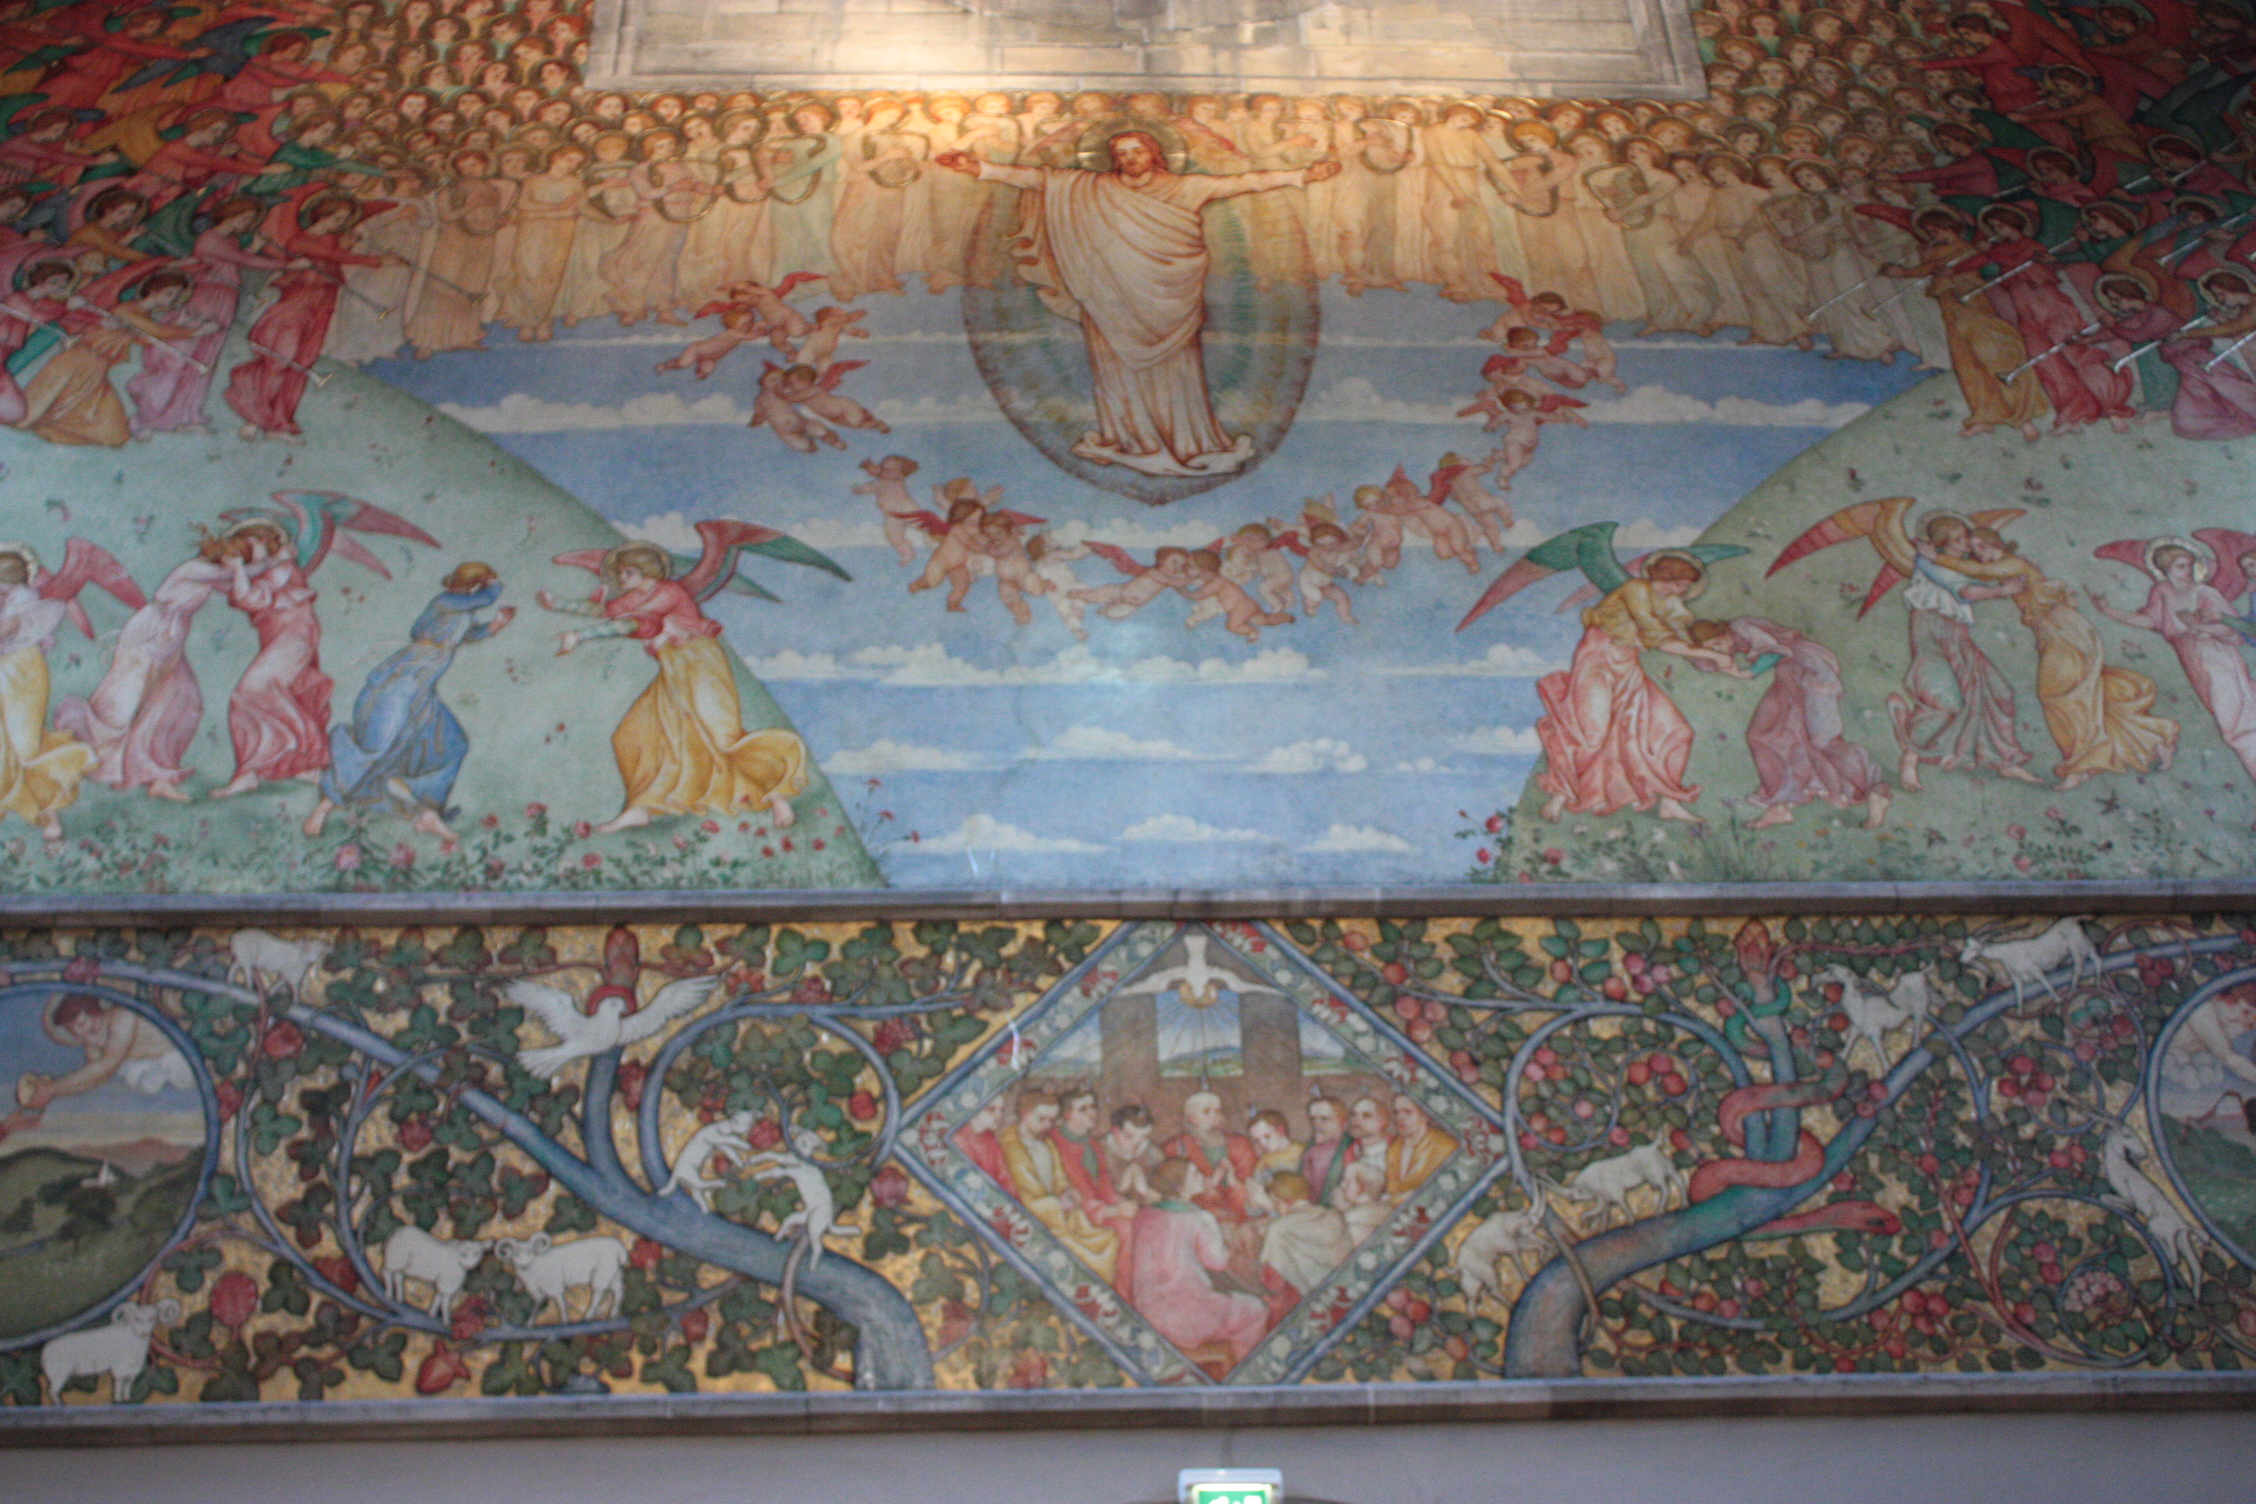 File:Phoebe Traquair's murals, Catholic Apostolic Church, Edinburgh